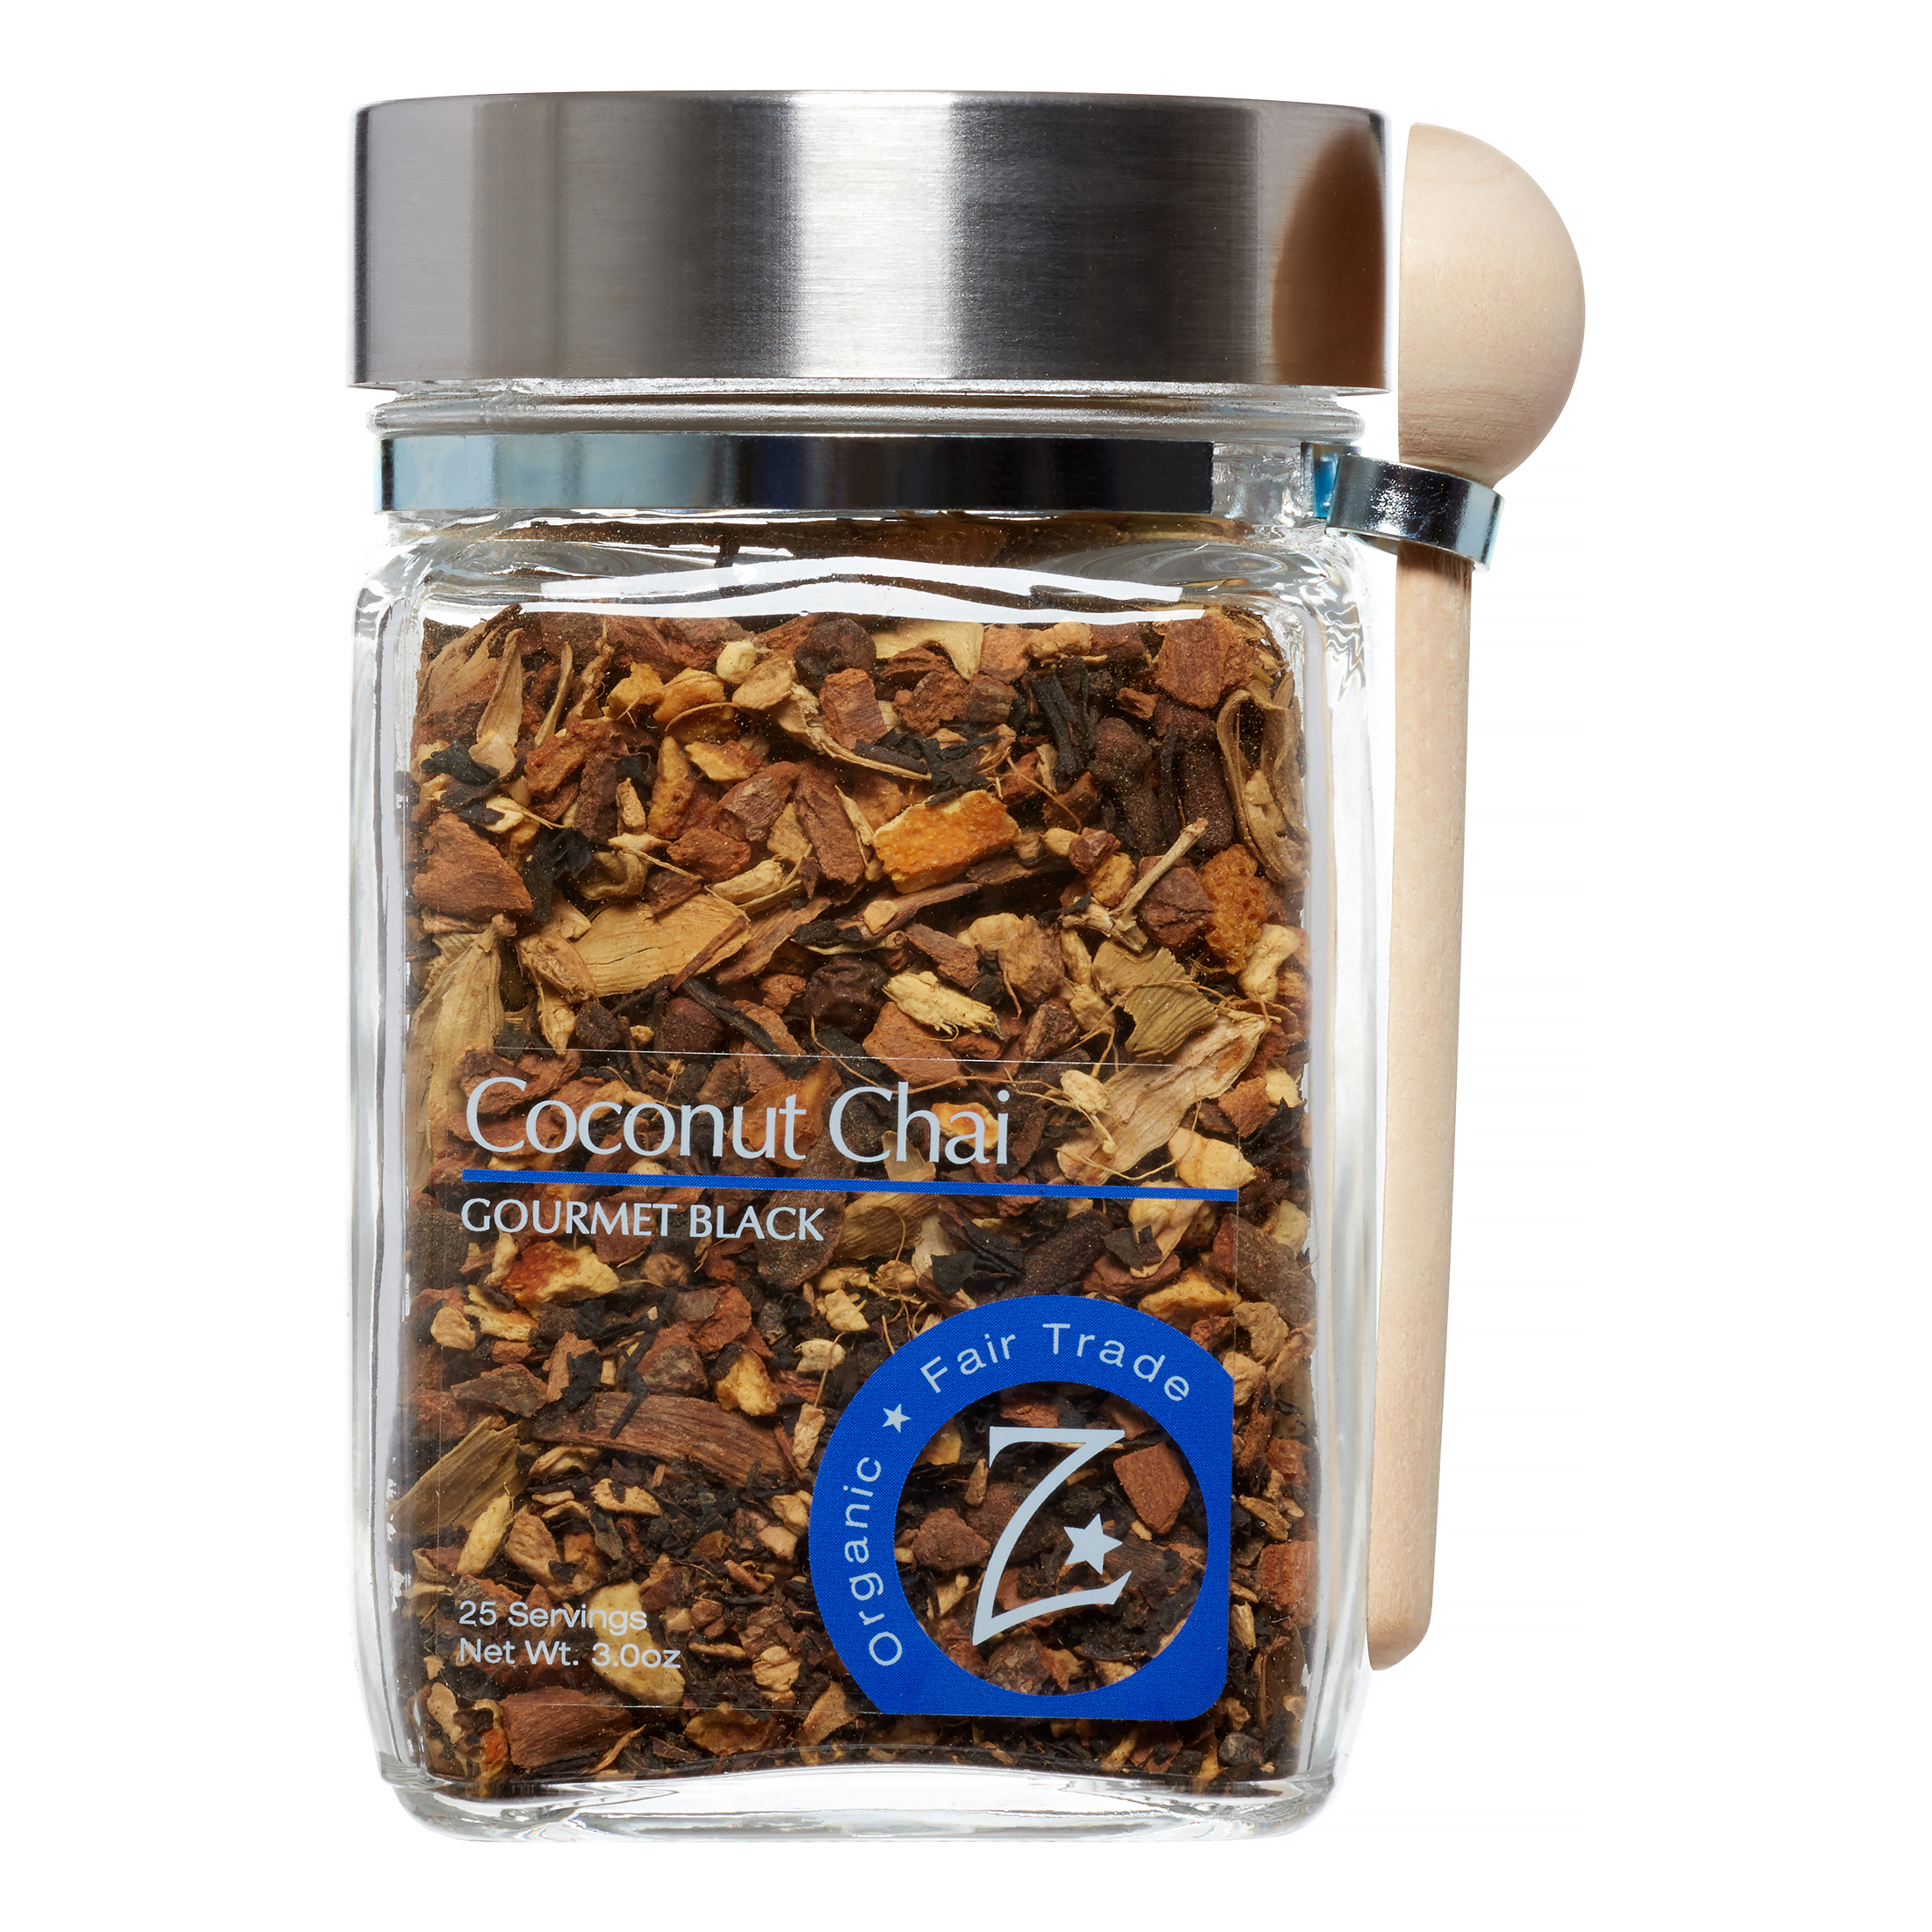 Zhena's Gypsy Tea Organic Loose Leaf Black Tea Coconut Chai, 3 Fl Oz